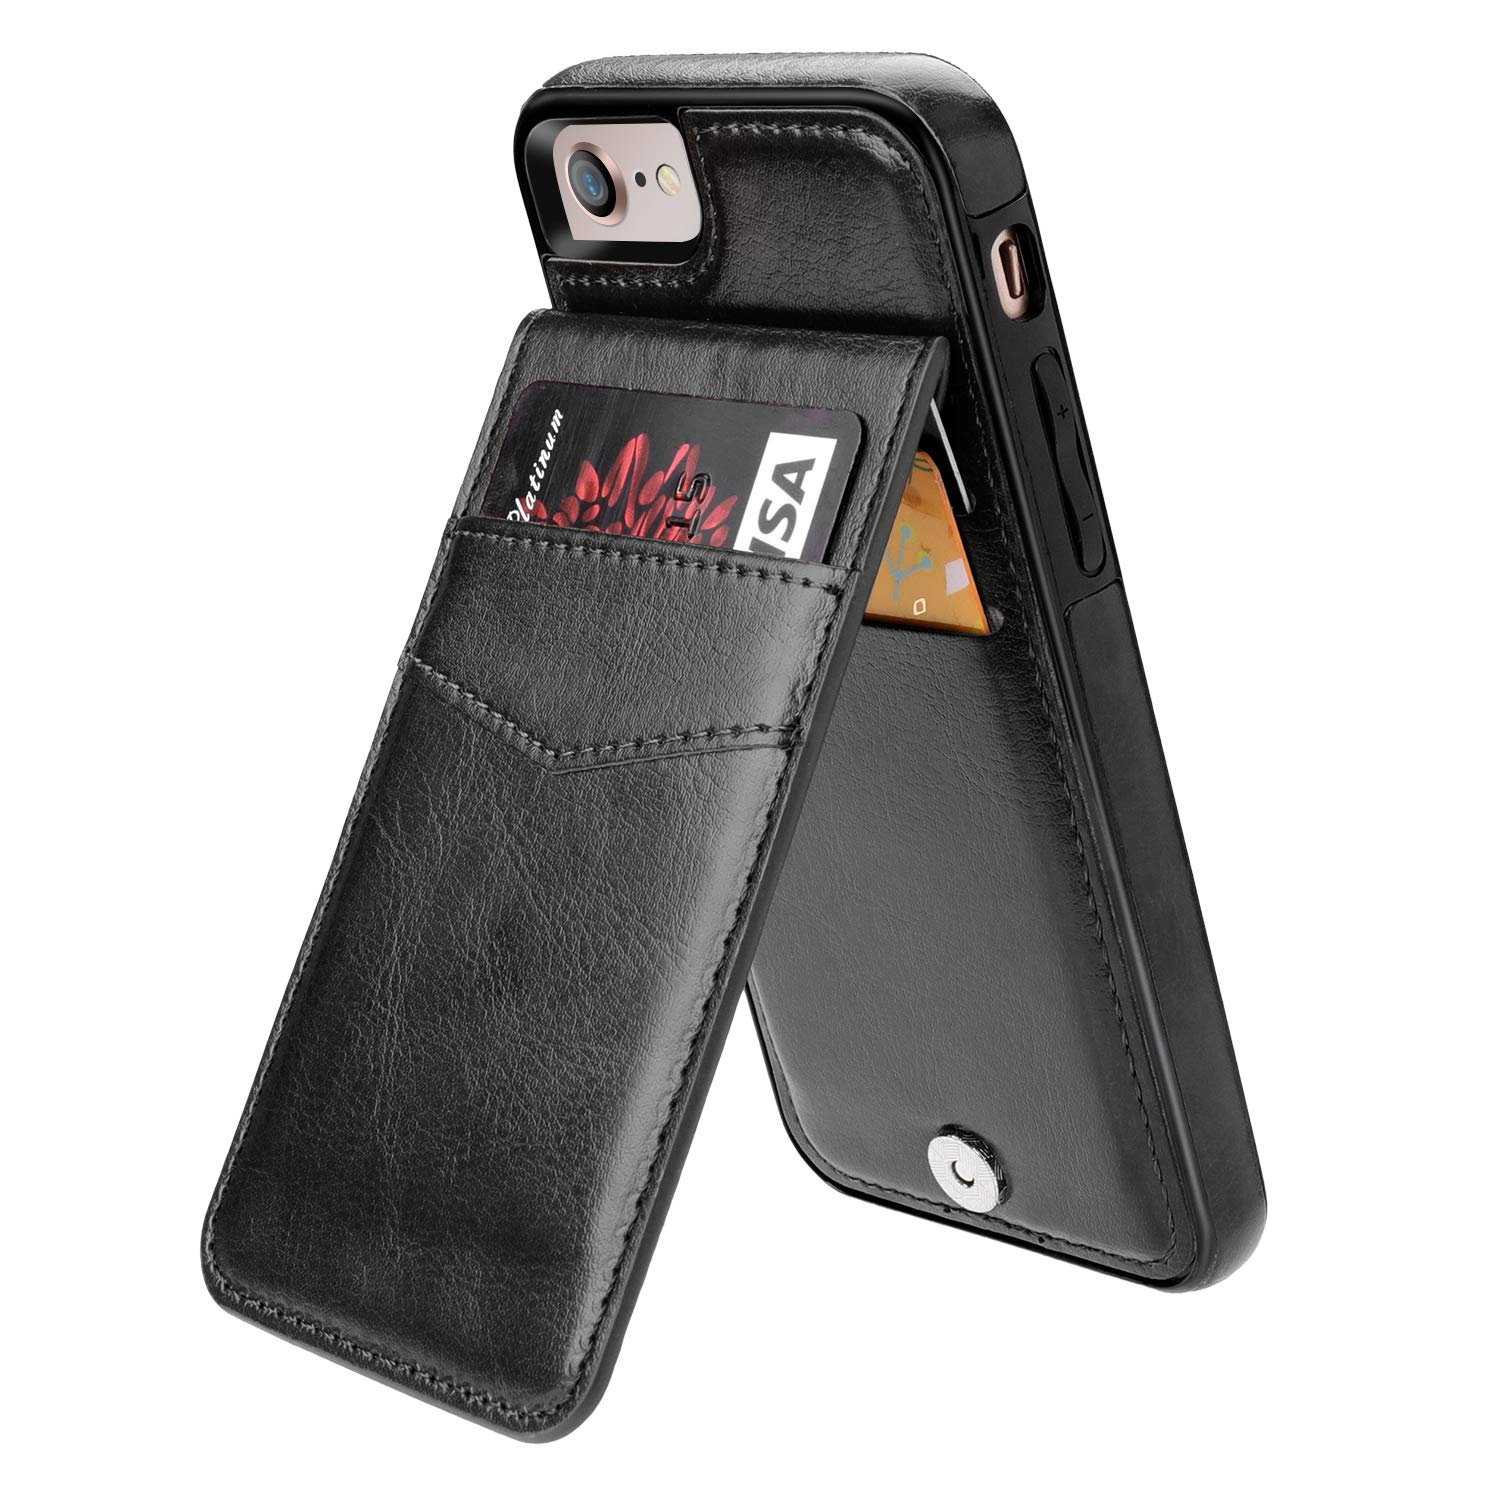 iPhone 7 iPhone 8 Case Wallet with Credit Card Holder, KIHUWEY Premium Leather Magnetic Clasp Kickstand Heavy Duty Protective Cover for iPhone 7/8 4.7 Inch(Black) by KIHUWEY